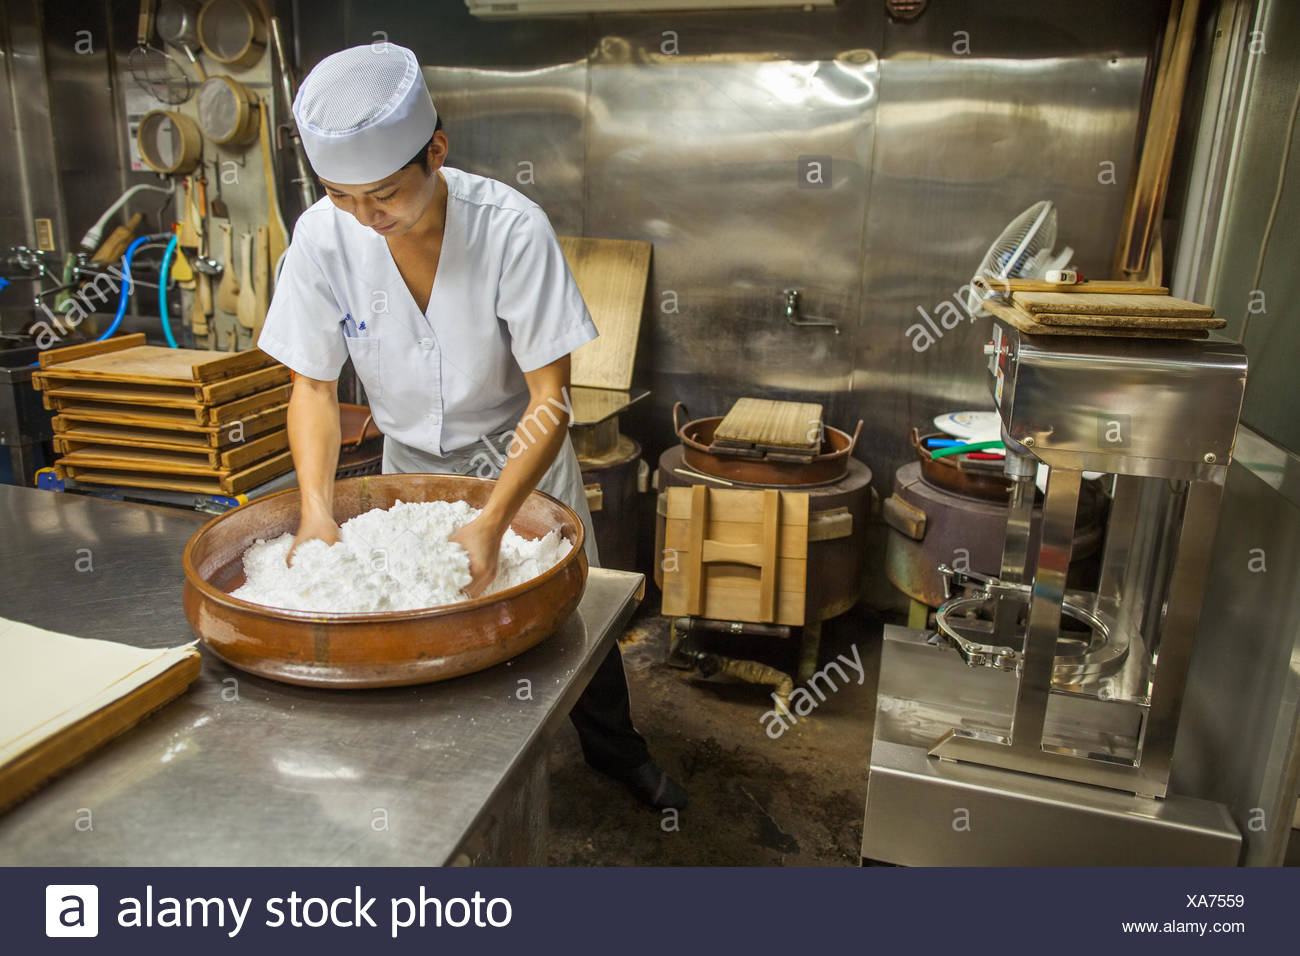 A small artisan producer of wagashi. A man mixing a large bowl of ingredients - Stock Image